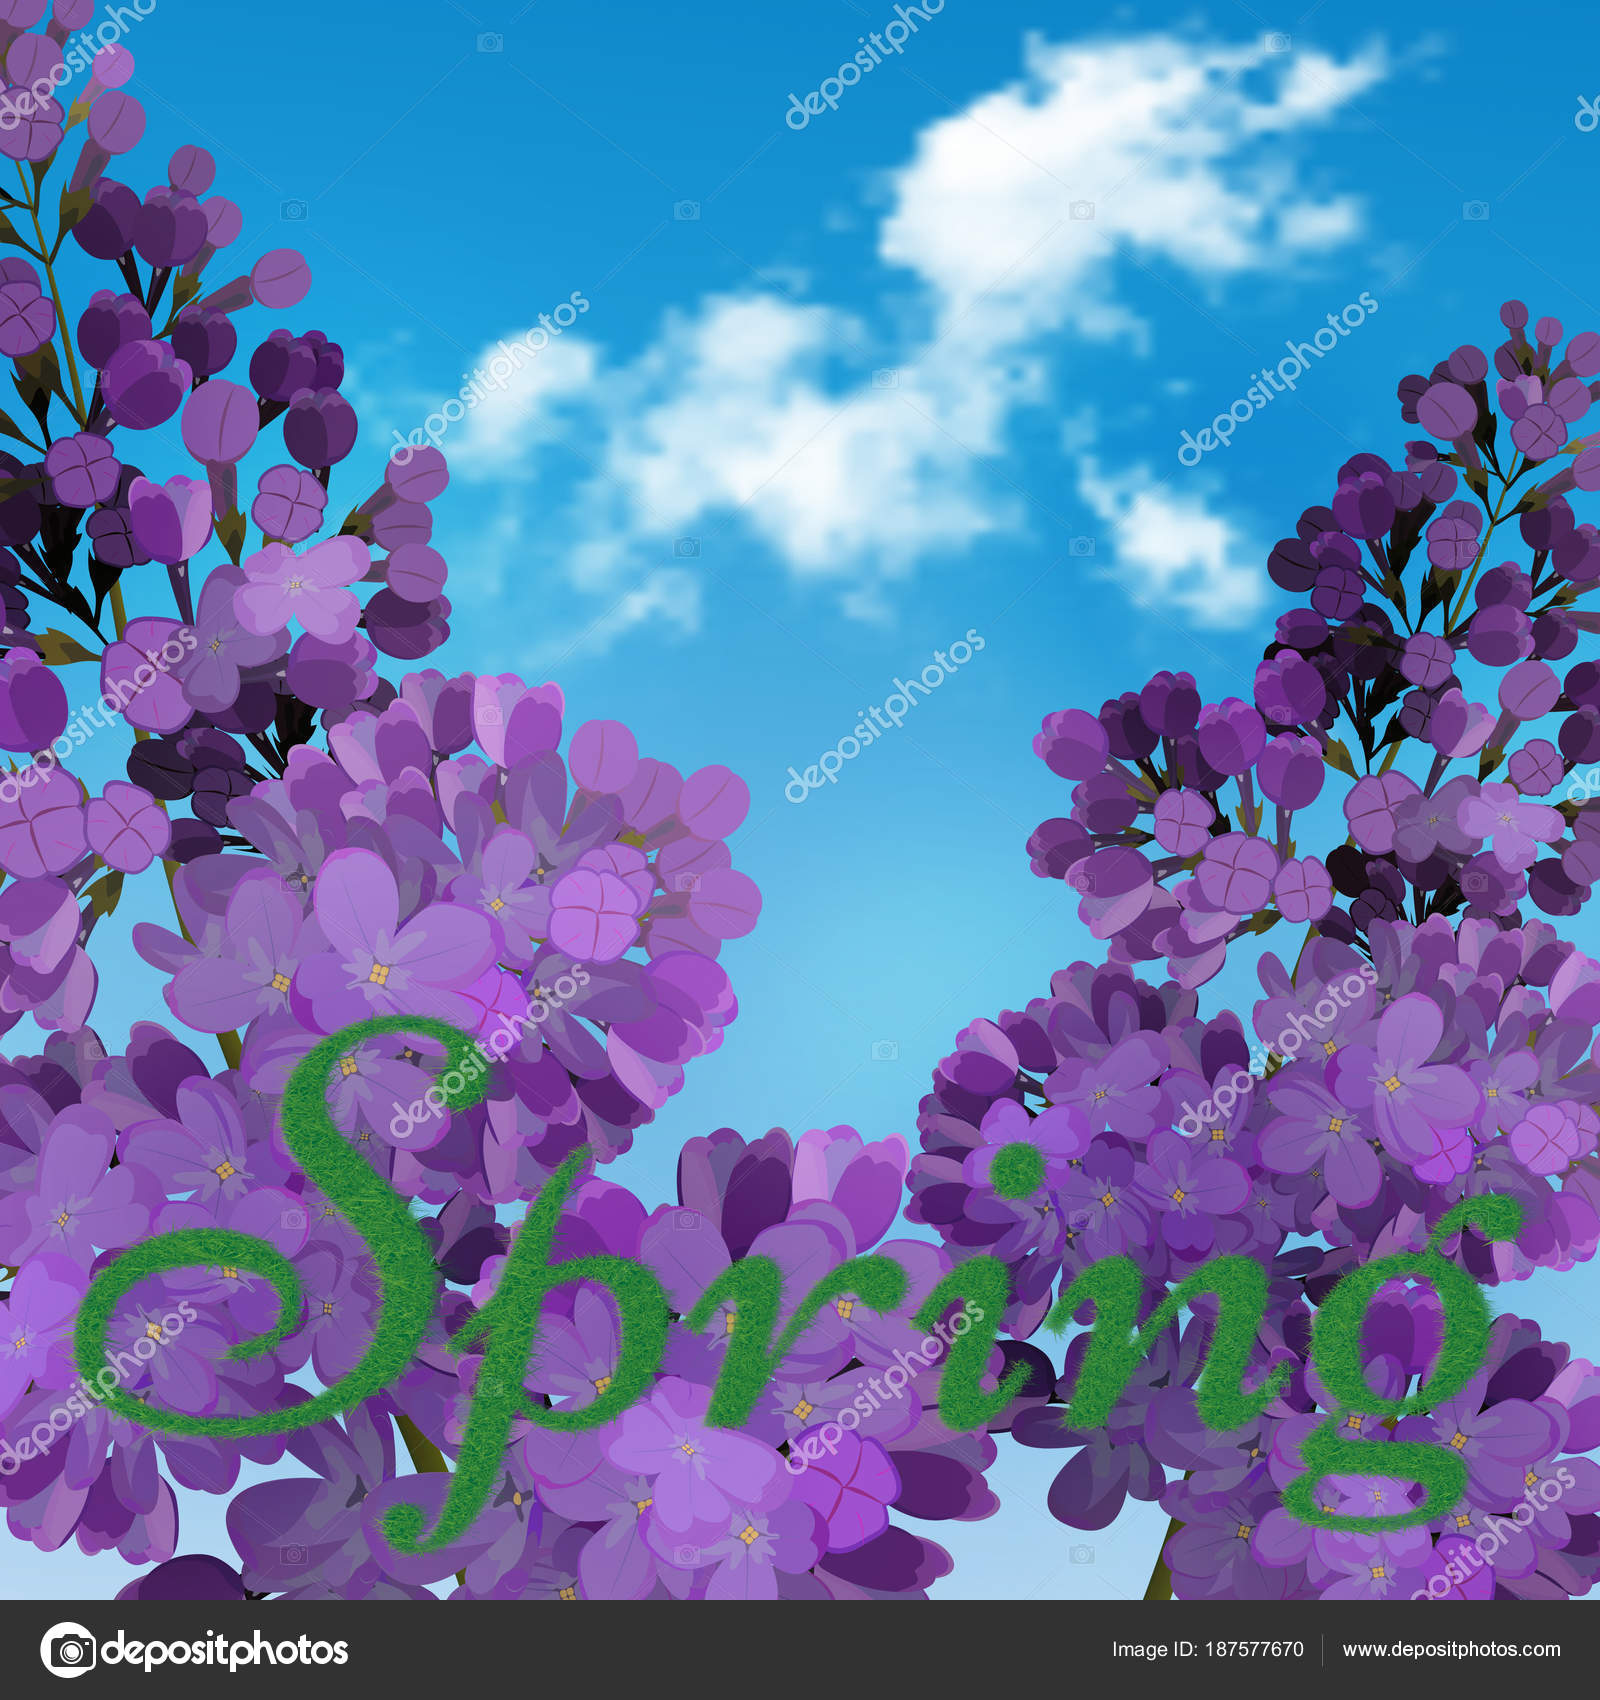 Blooming Violet Lilac Flowers Floral Background With Blue Sky